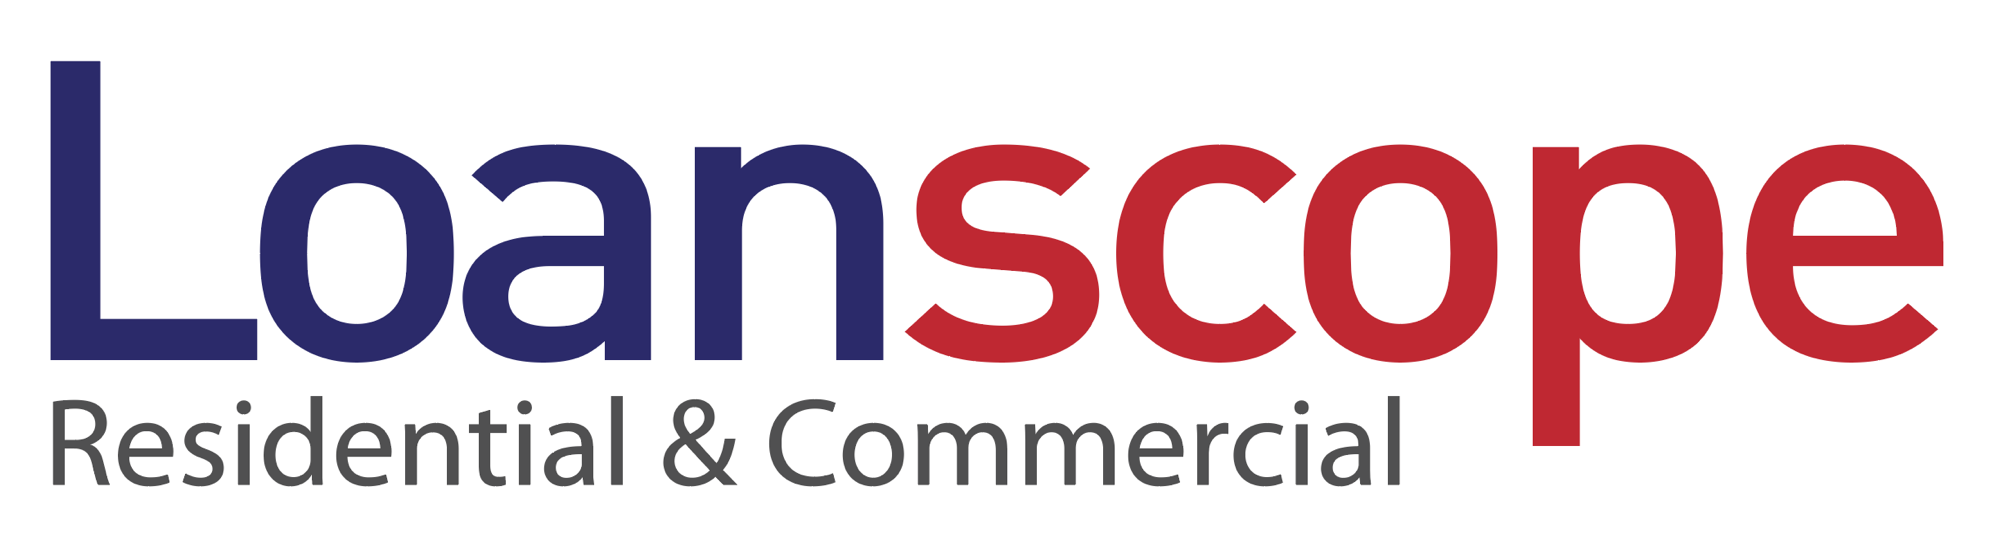 Loanscope residential and commercial financial